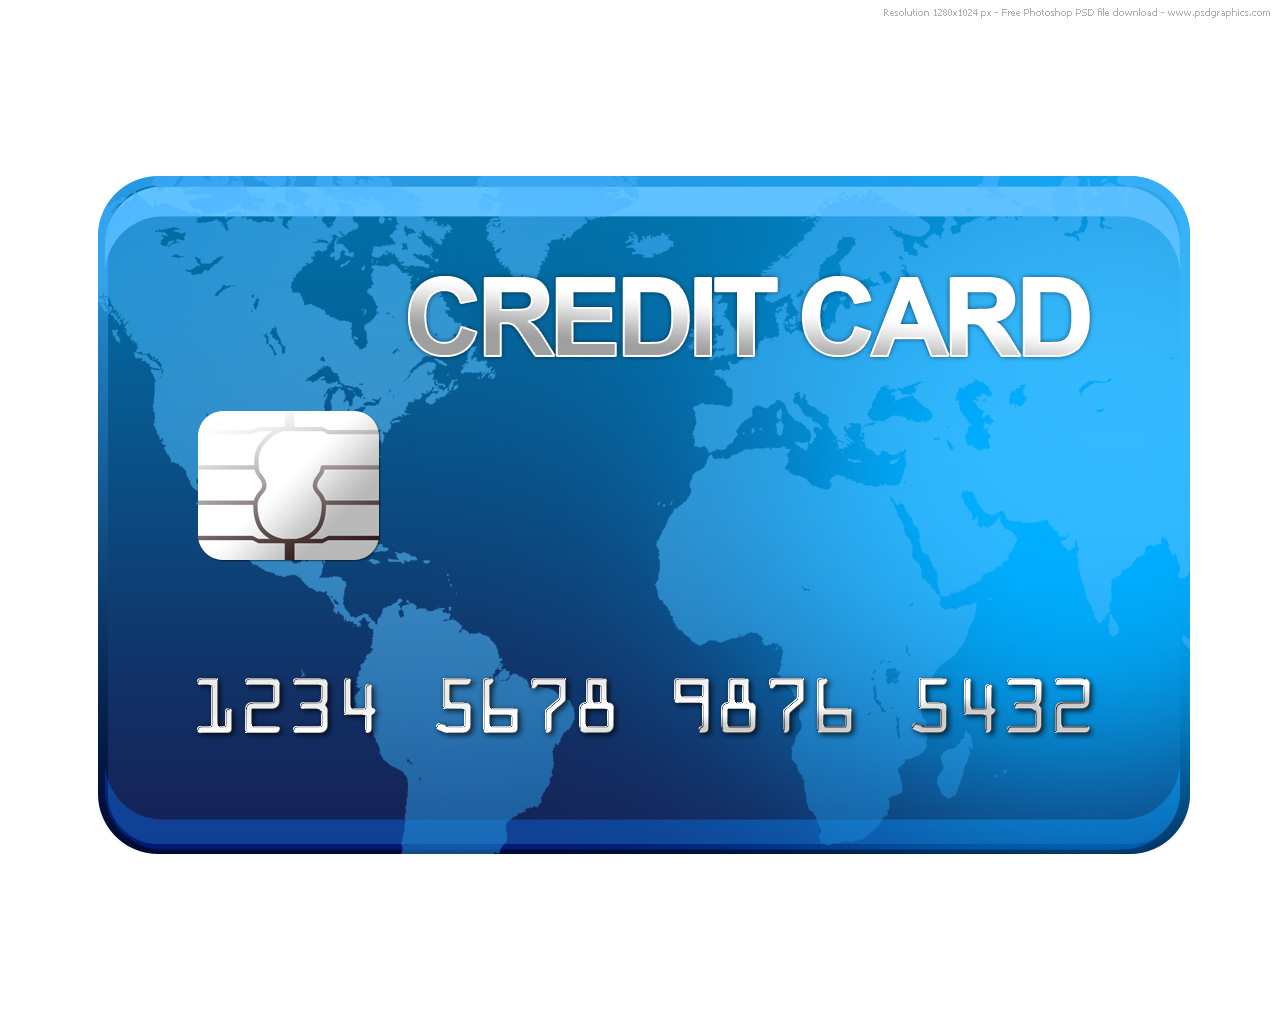 A Just 6 Card How Hack It Credit To Seconds Takes